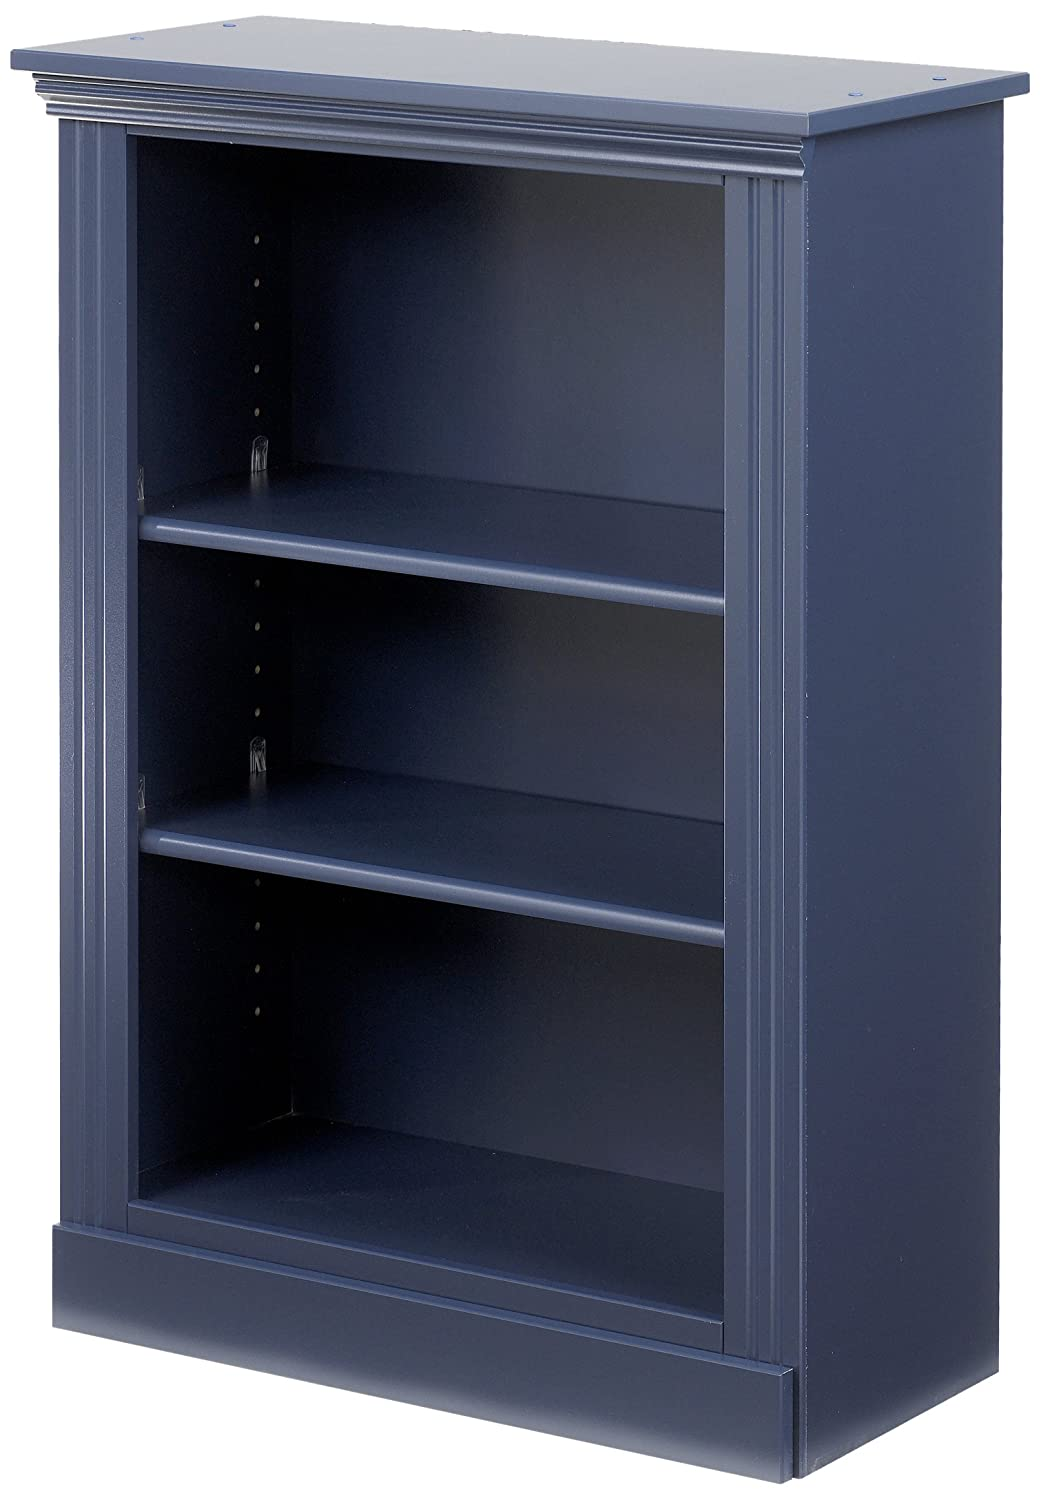 Lang Furniture Madison Book Shelf - 12 by 28 by 37-Inch - Indigo Blue